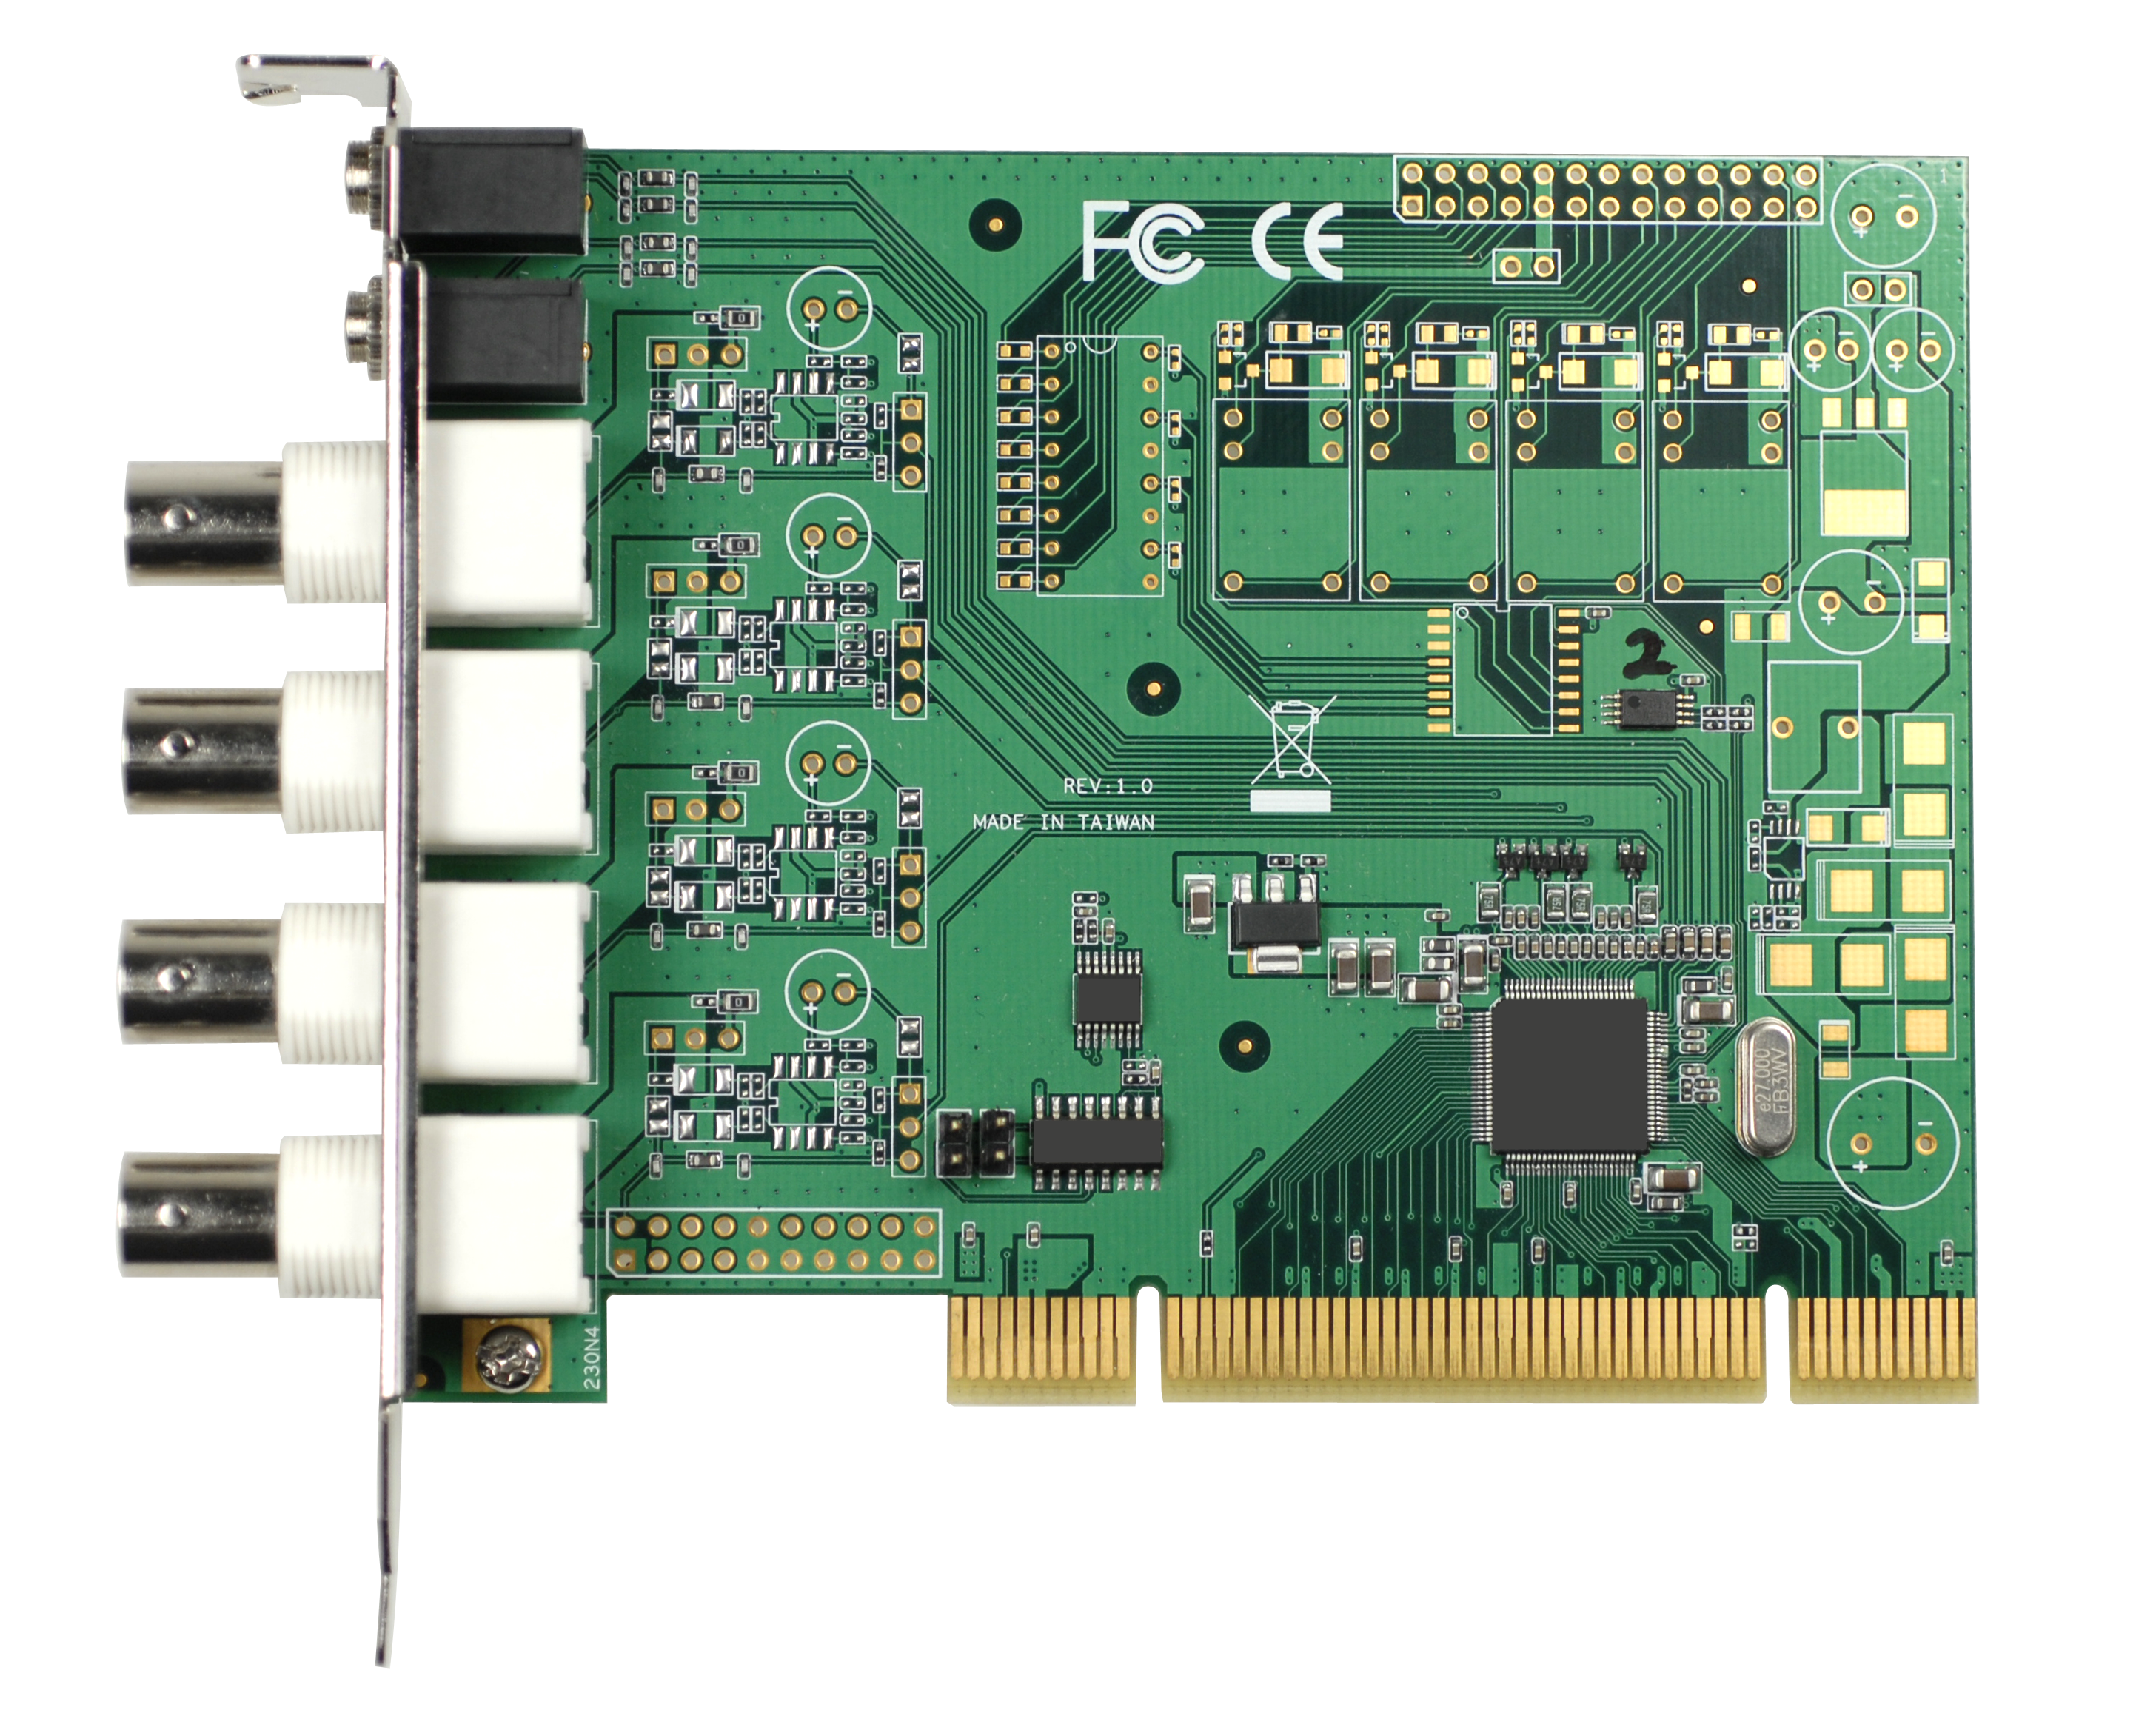 4-ch H.264/MPEG-4 PCI Video Capture Card with SDK